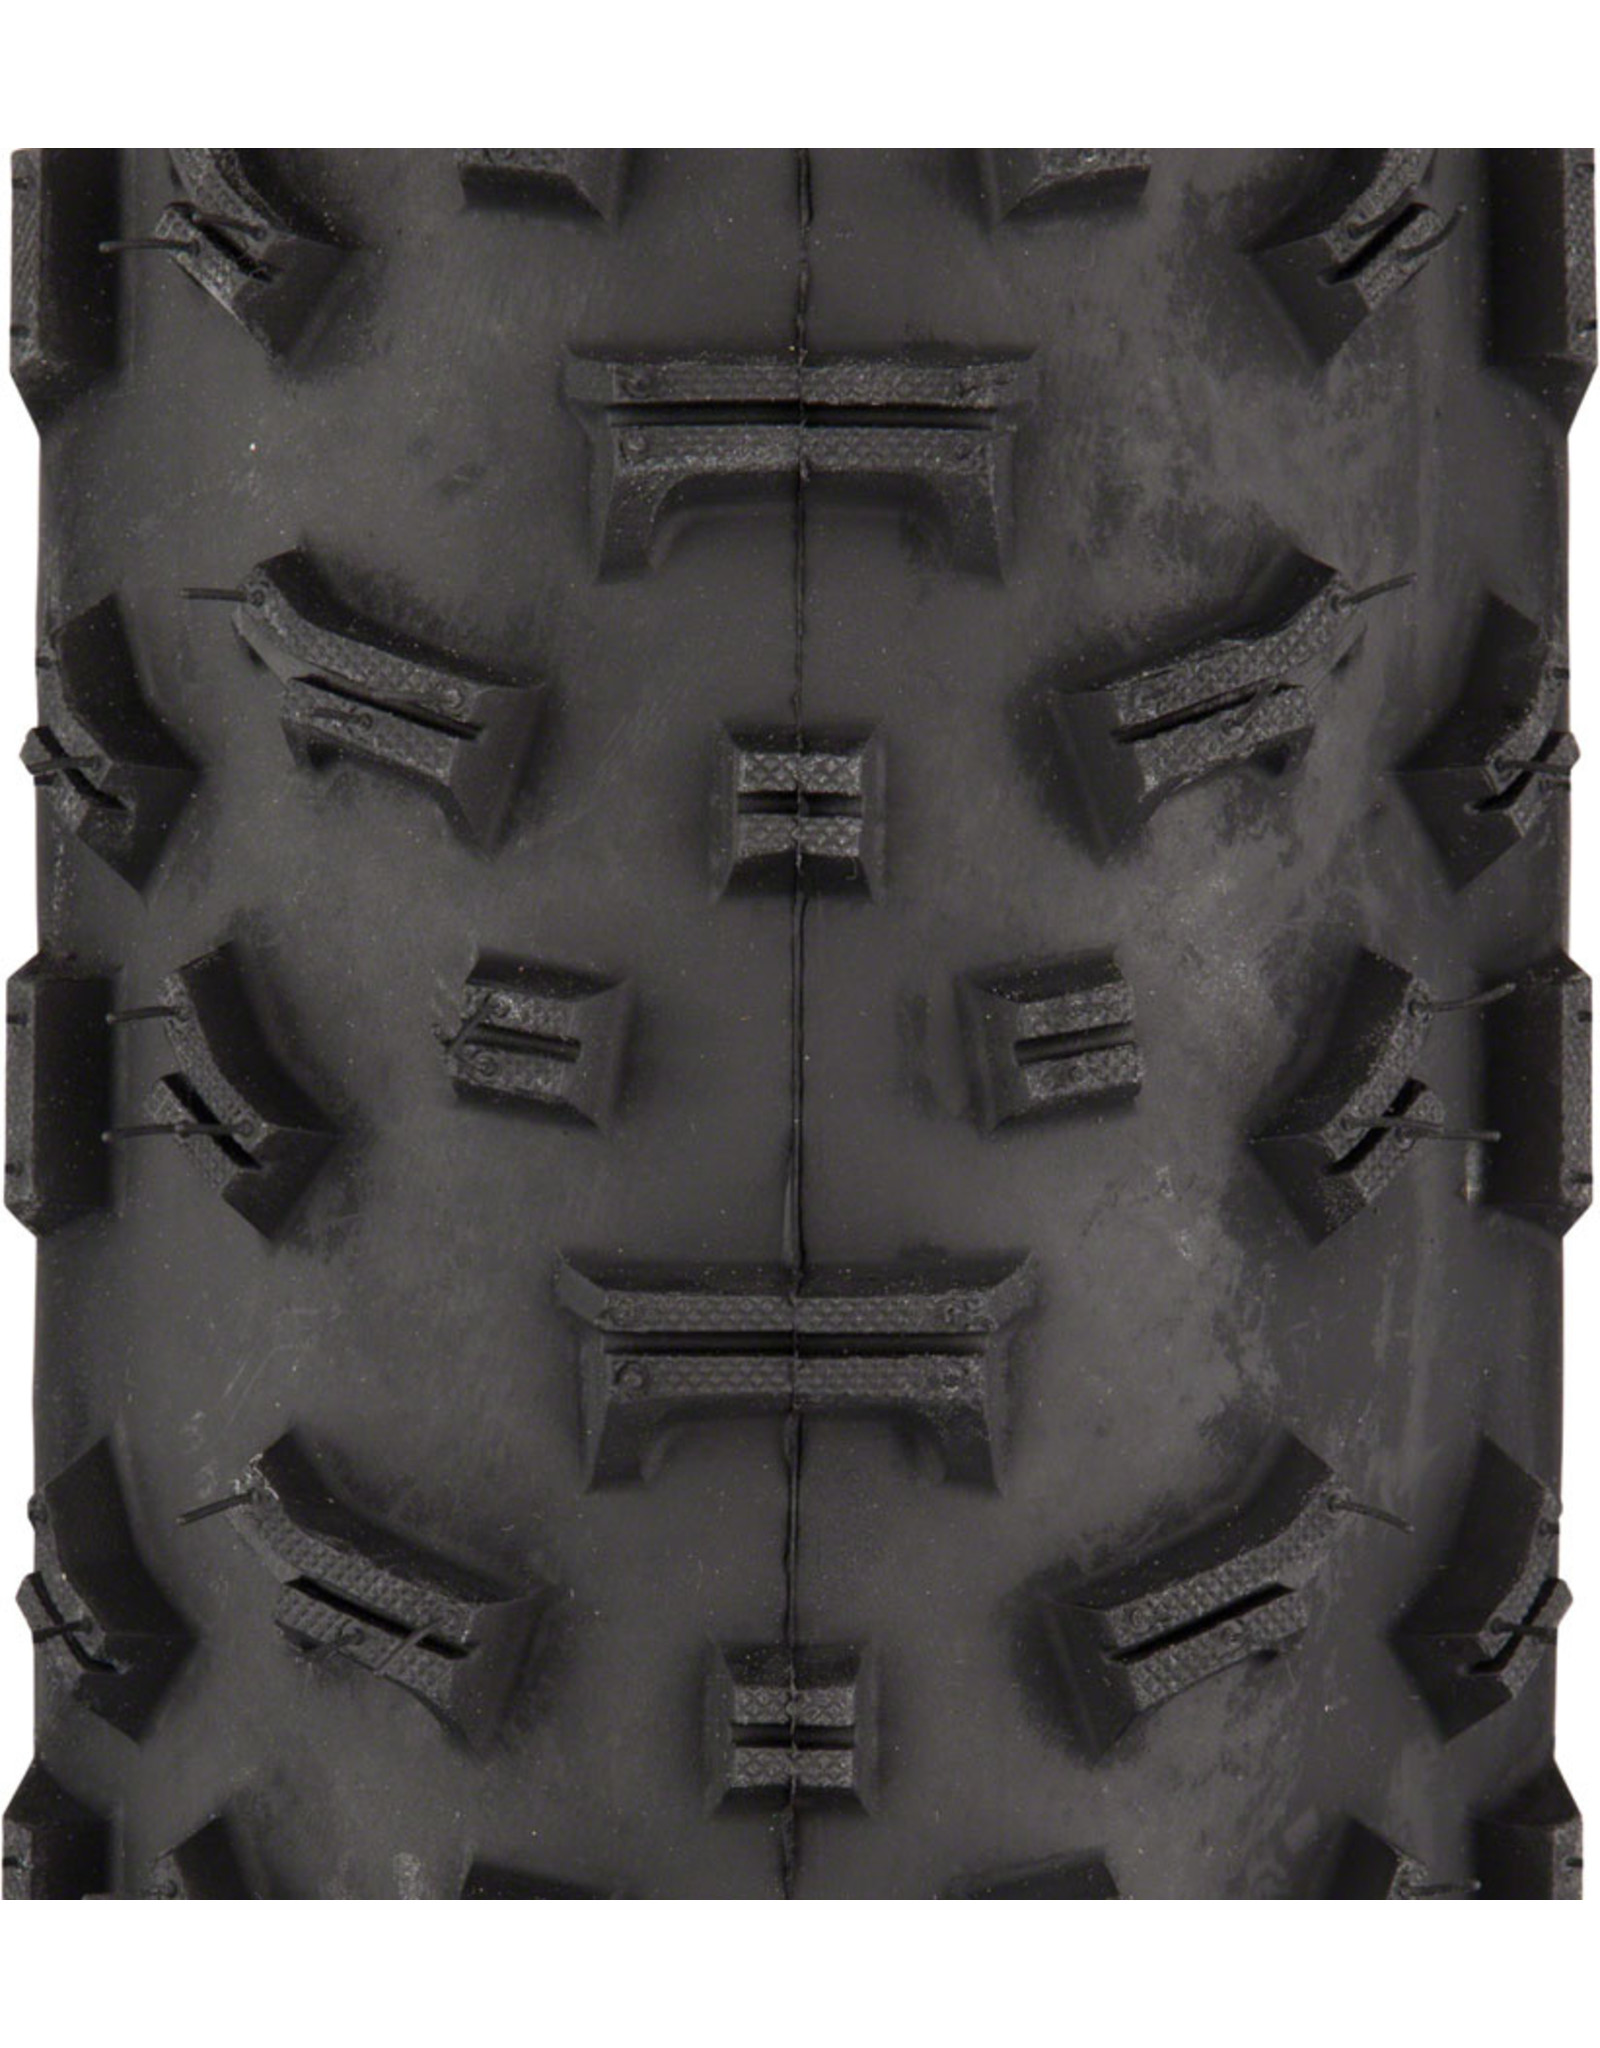 "Surly Surly Lou 26 x 4.8"" 120tpi Folding Tire"